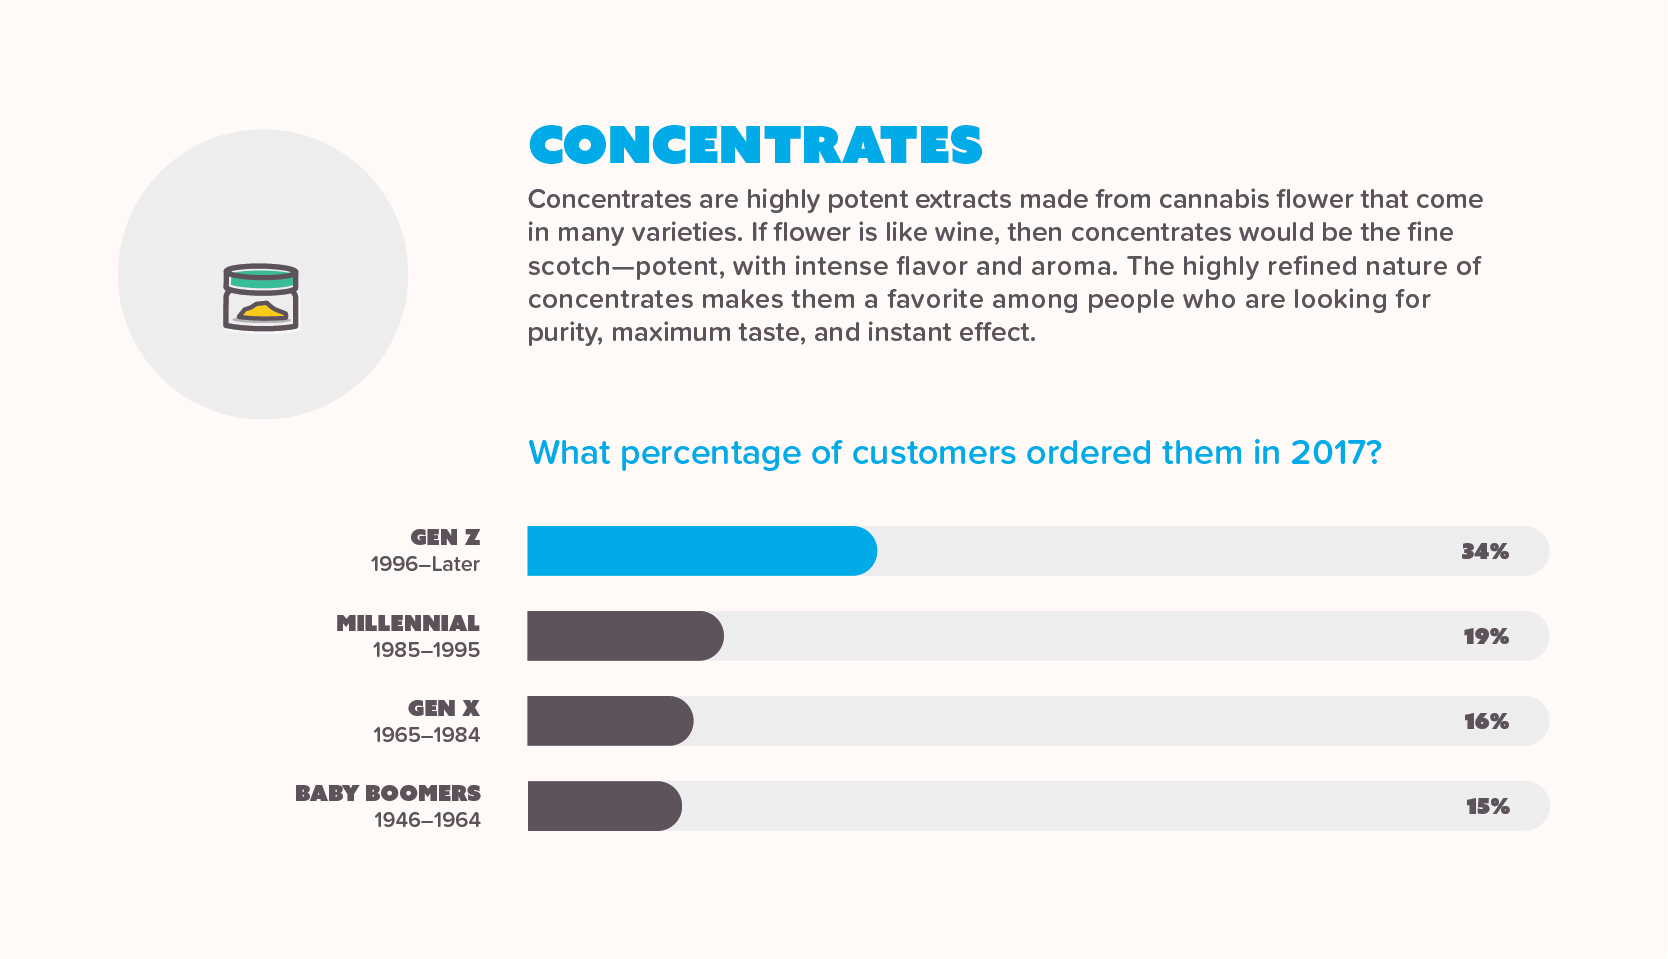 Infographic showing sales of marijuana concentrates per generation in 2017